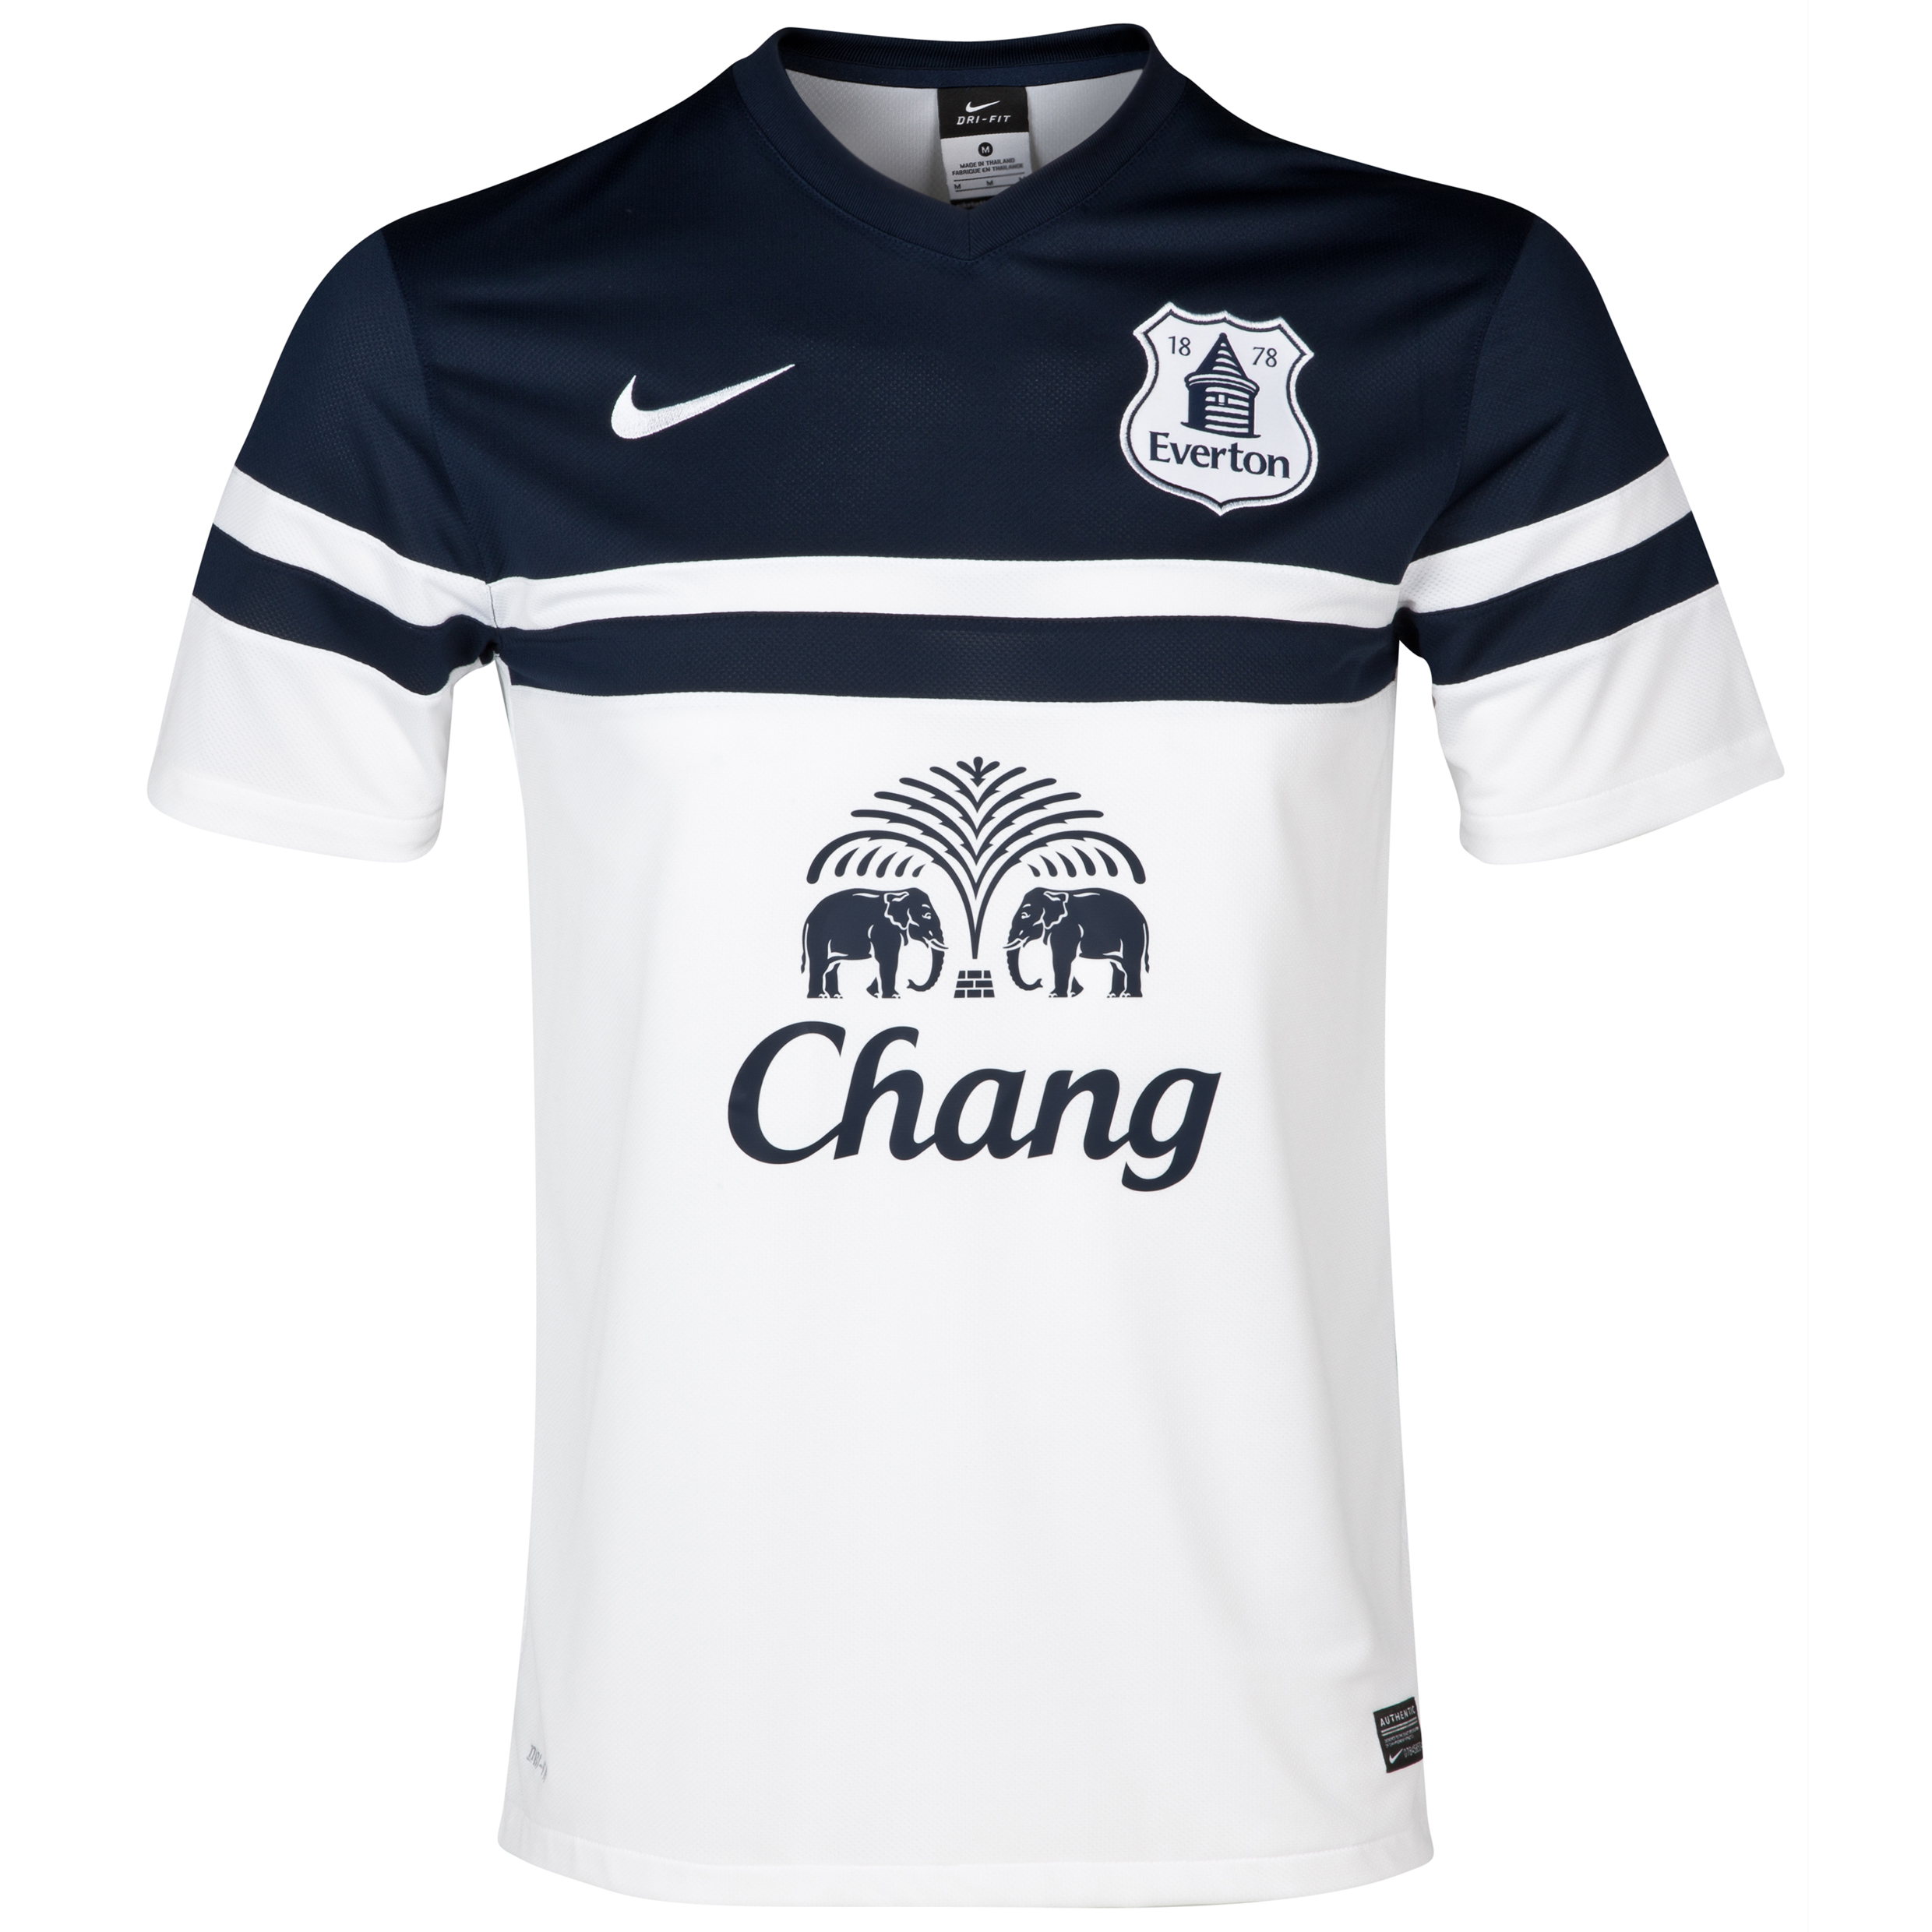 Everton 3rd Shirt 2013/14 White